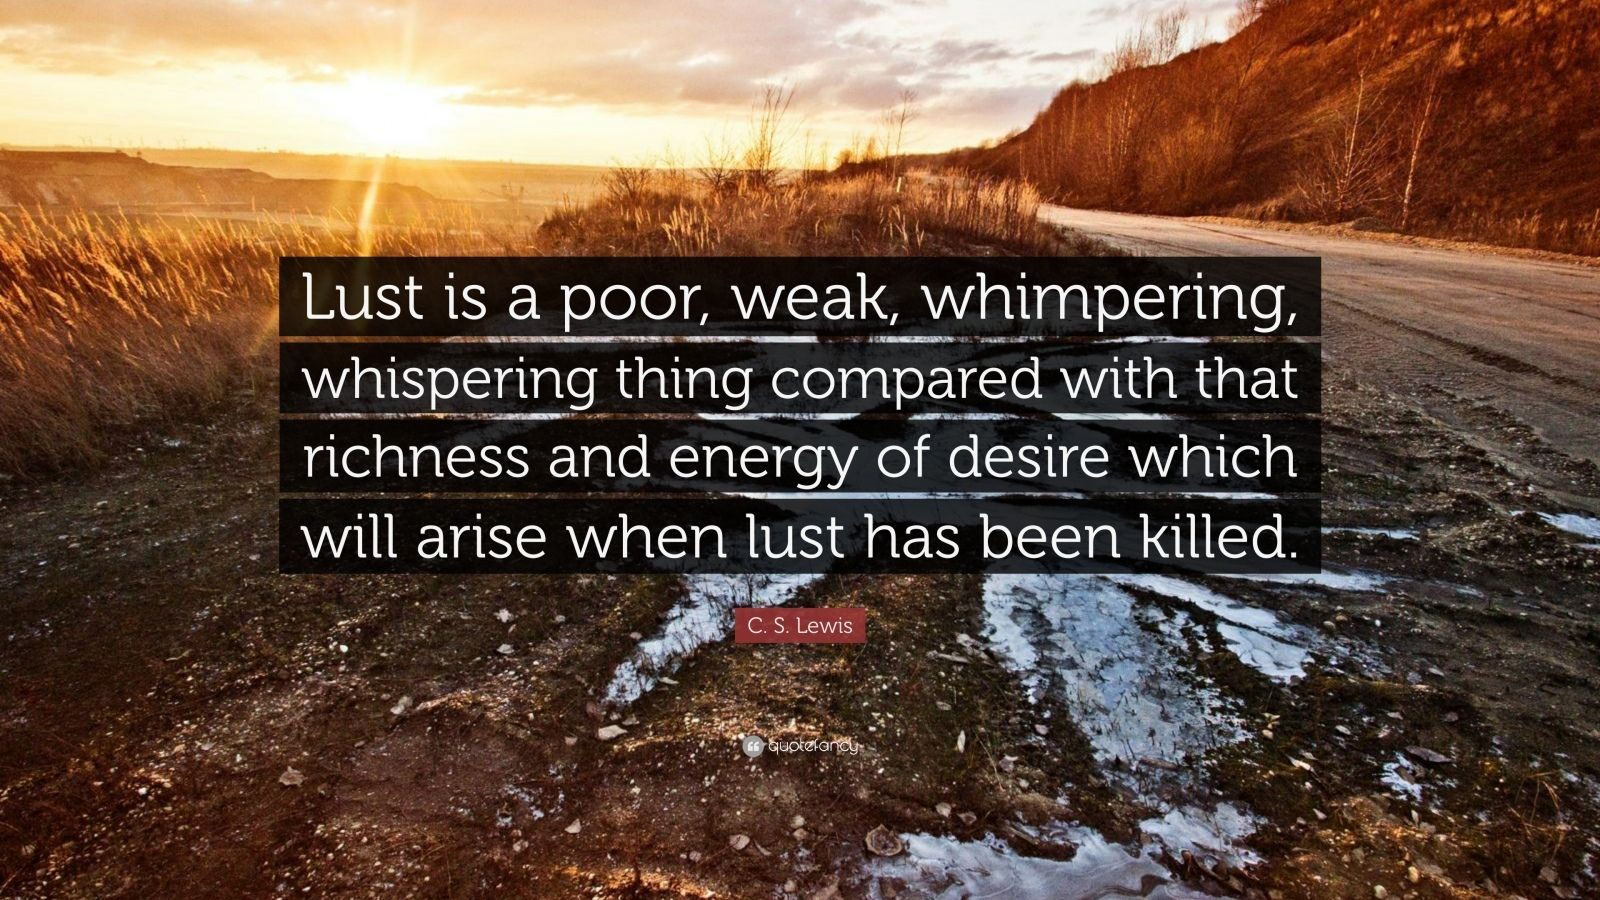 """C. S. Lewis Quote: """"Lust is a poor, weak, whimpering, whispering thing compared with that richness and energy of desire which will arise when lust has been killed."""""""